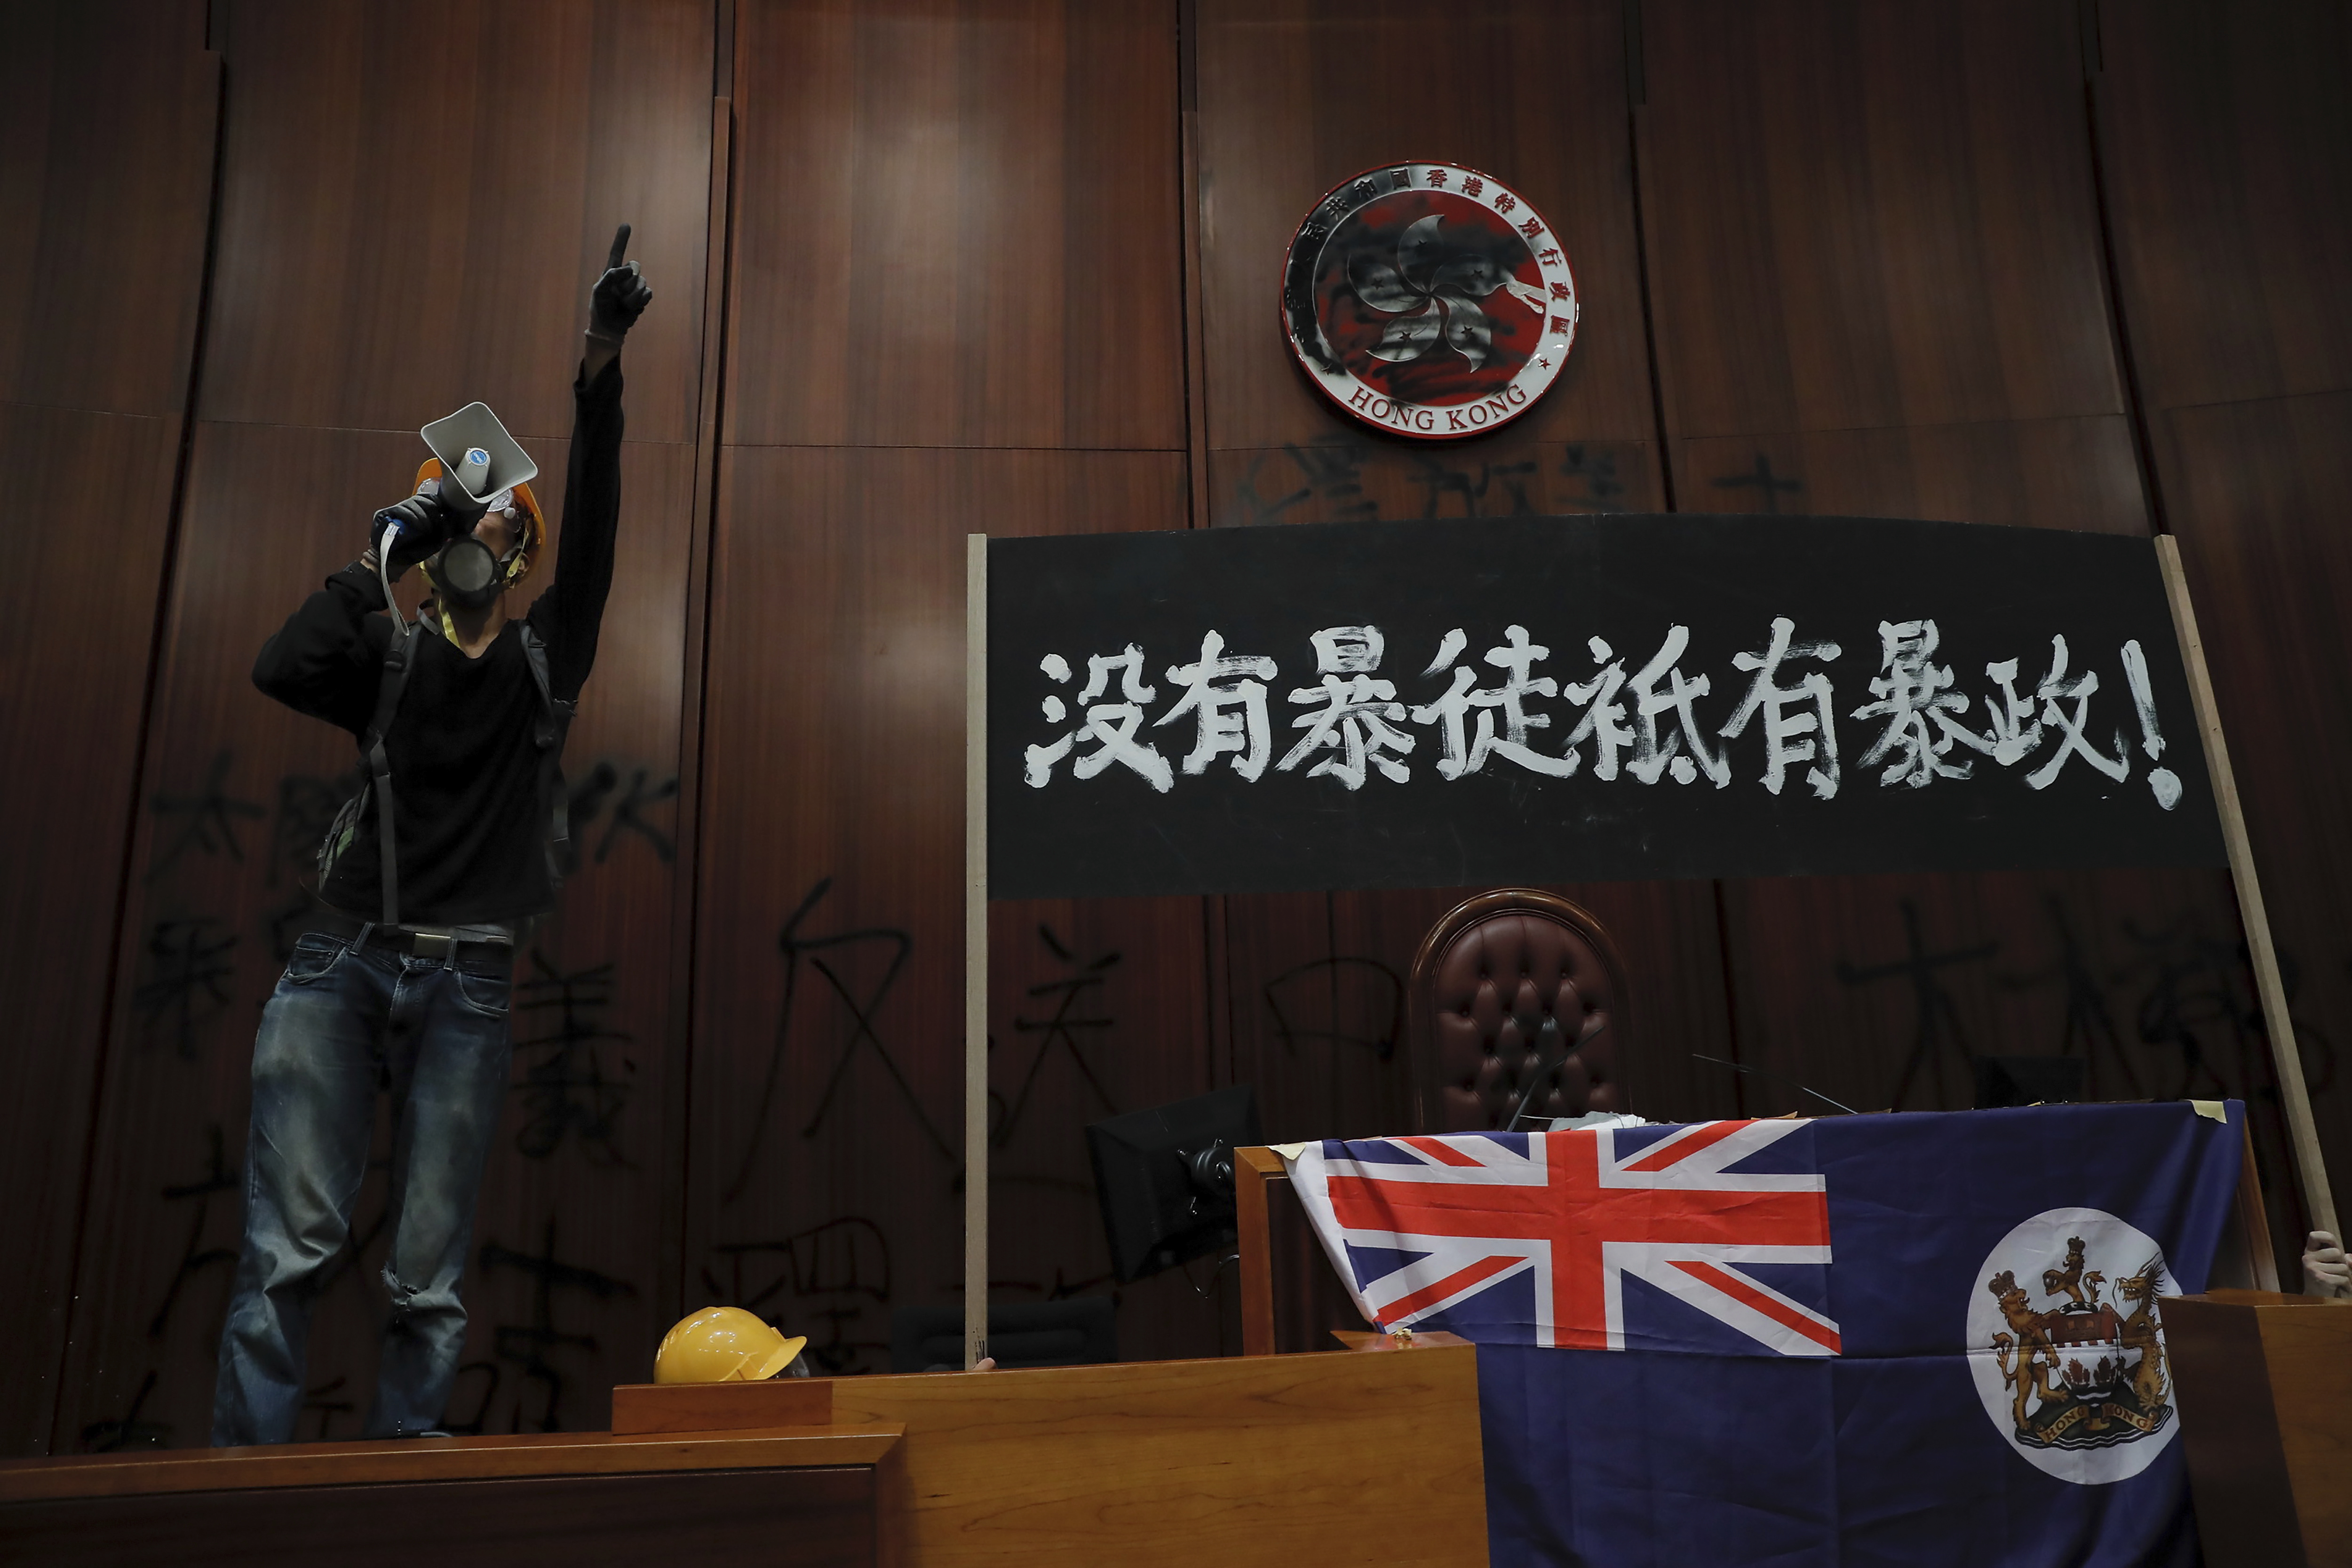 Hong Kong protest demands: drop extradition, free arrested